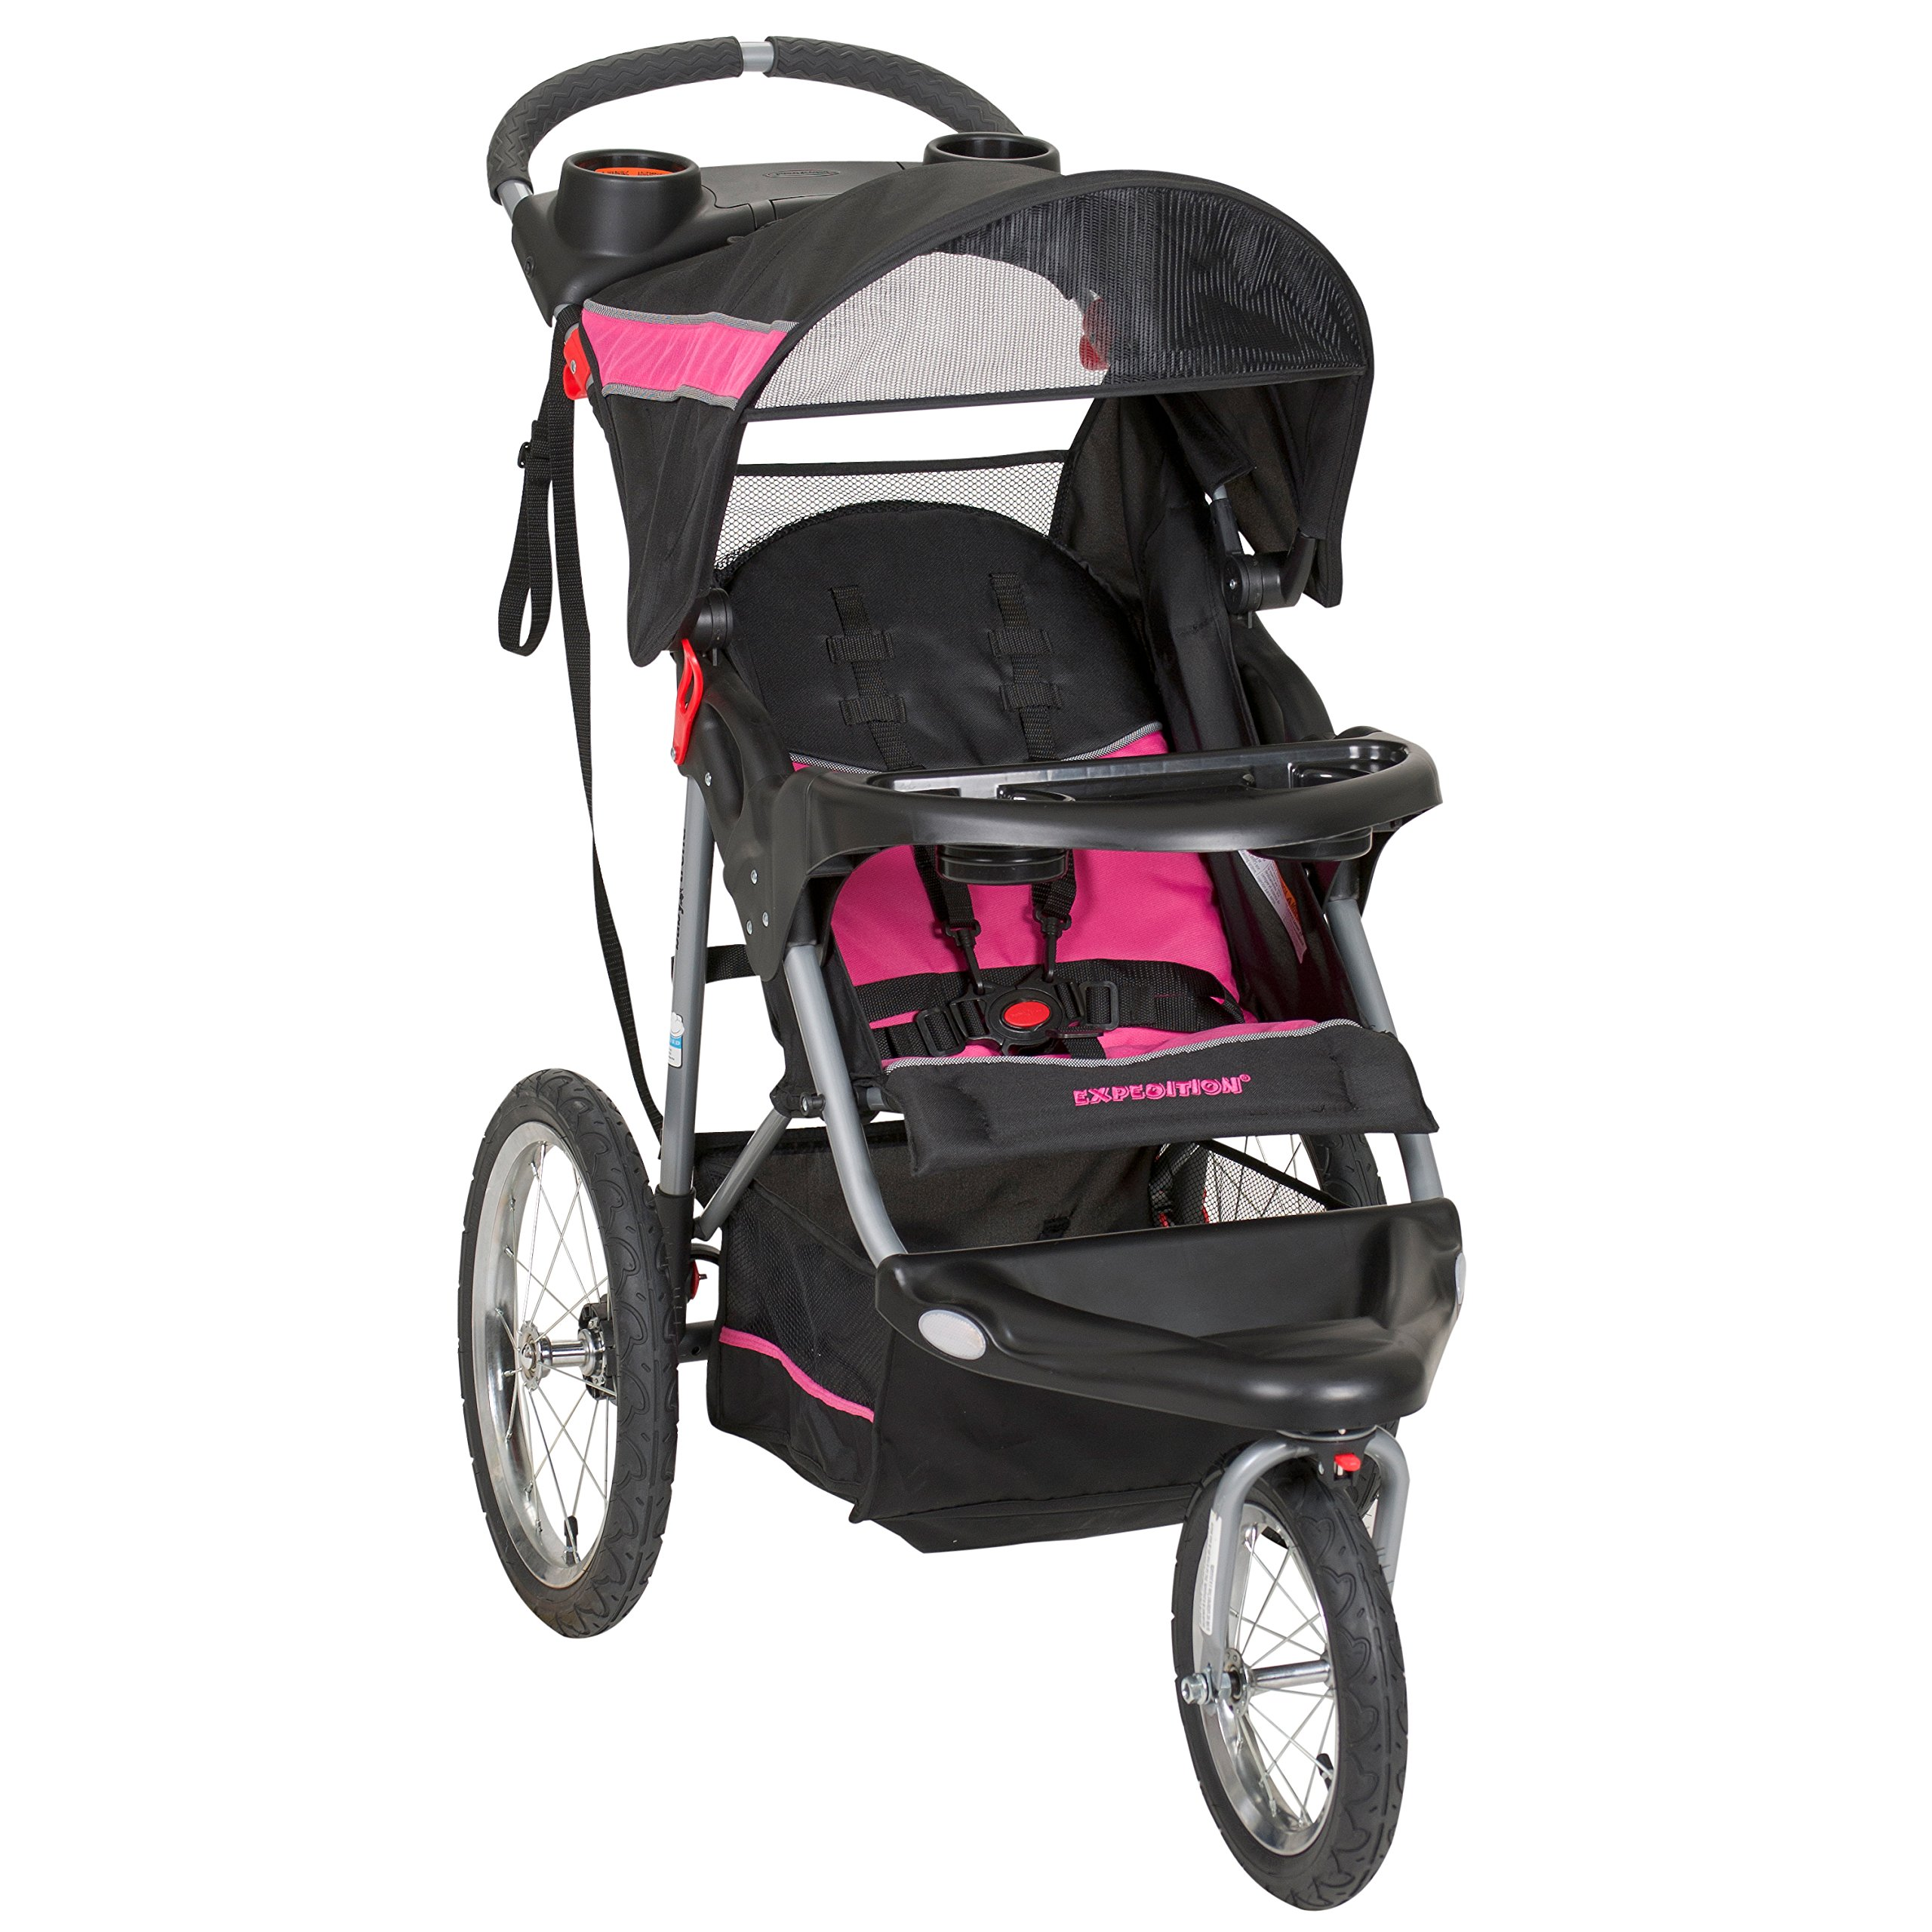 Image of the Baby Trend Expedition Jogger Stroller, Bubble Gum